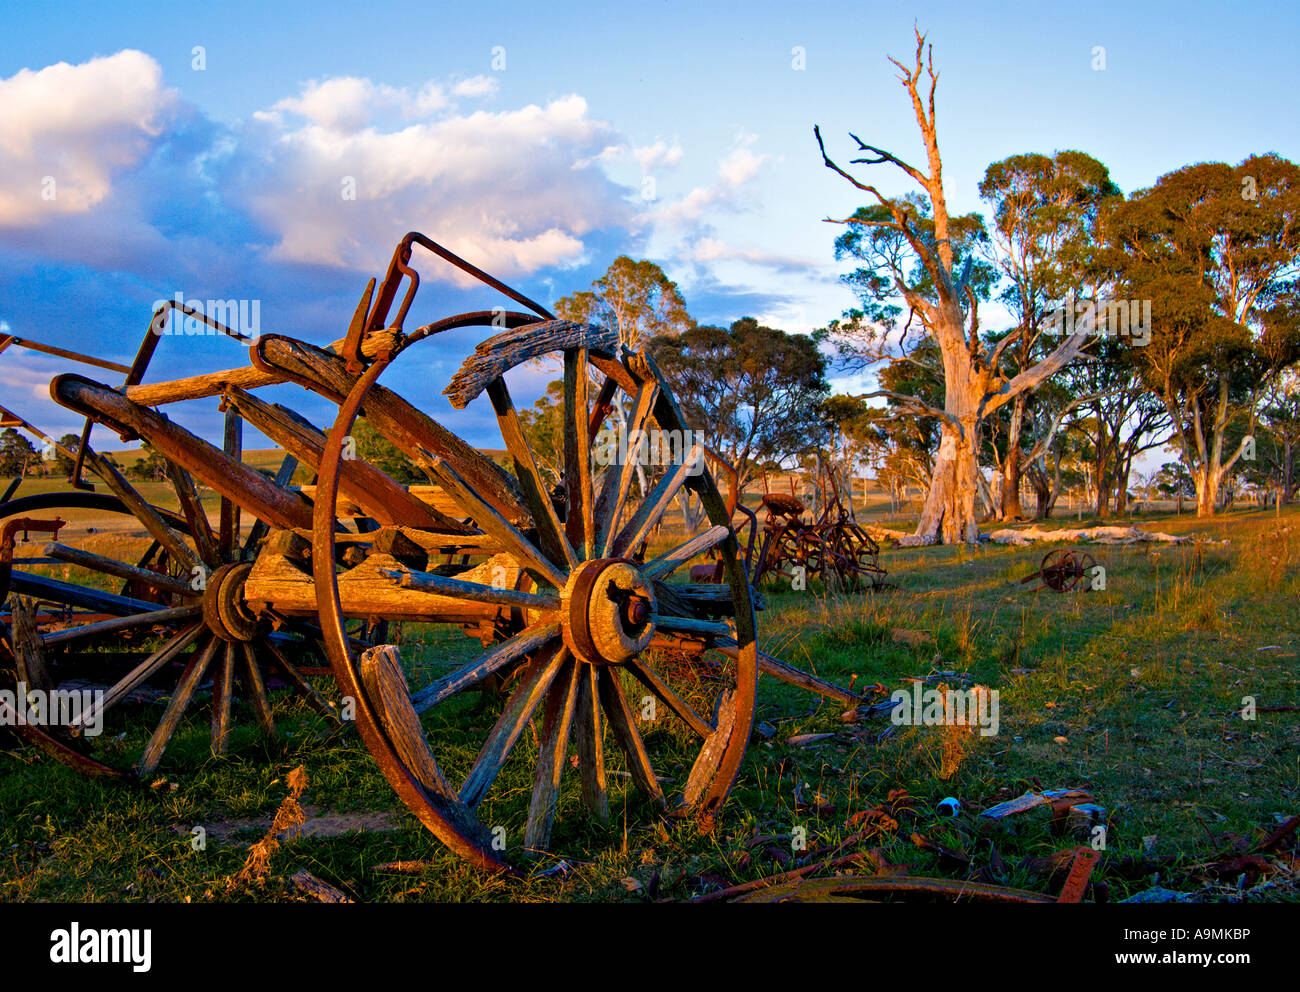 a nice bright image of an old cart left to rot on the farm - Stock Image